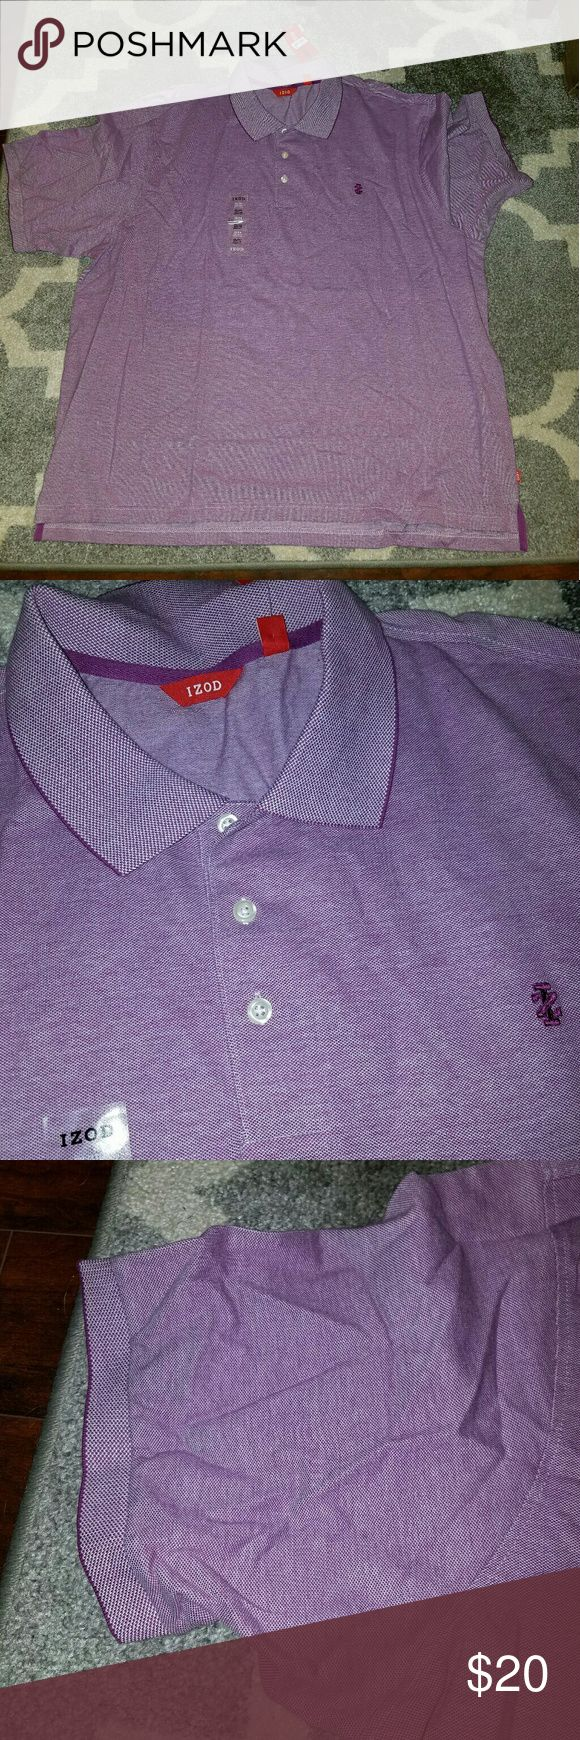 Mens Brand New Purple Izod Polo Shirt Size 4X Never worn. Size is 4xl. Purchased from Macys last summer and they are too large for my hubby. Same shirt in blud also in my closet. Izod Shirts Polos